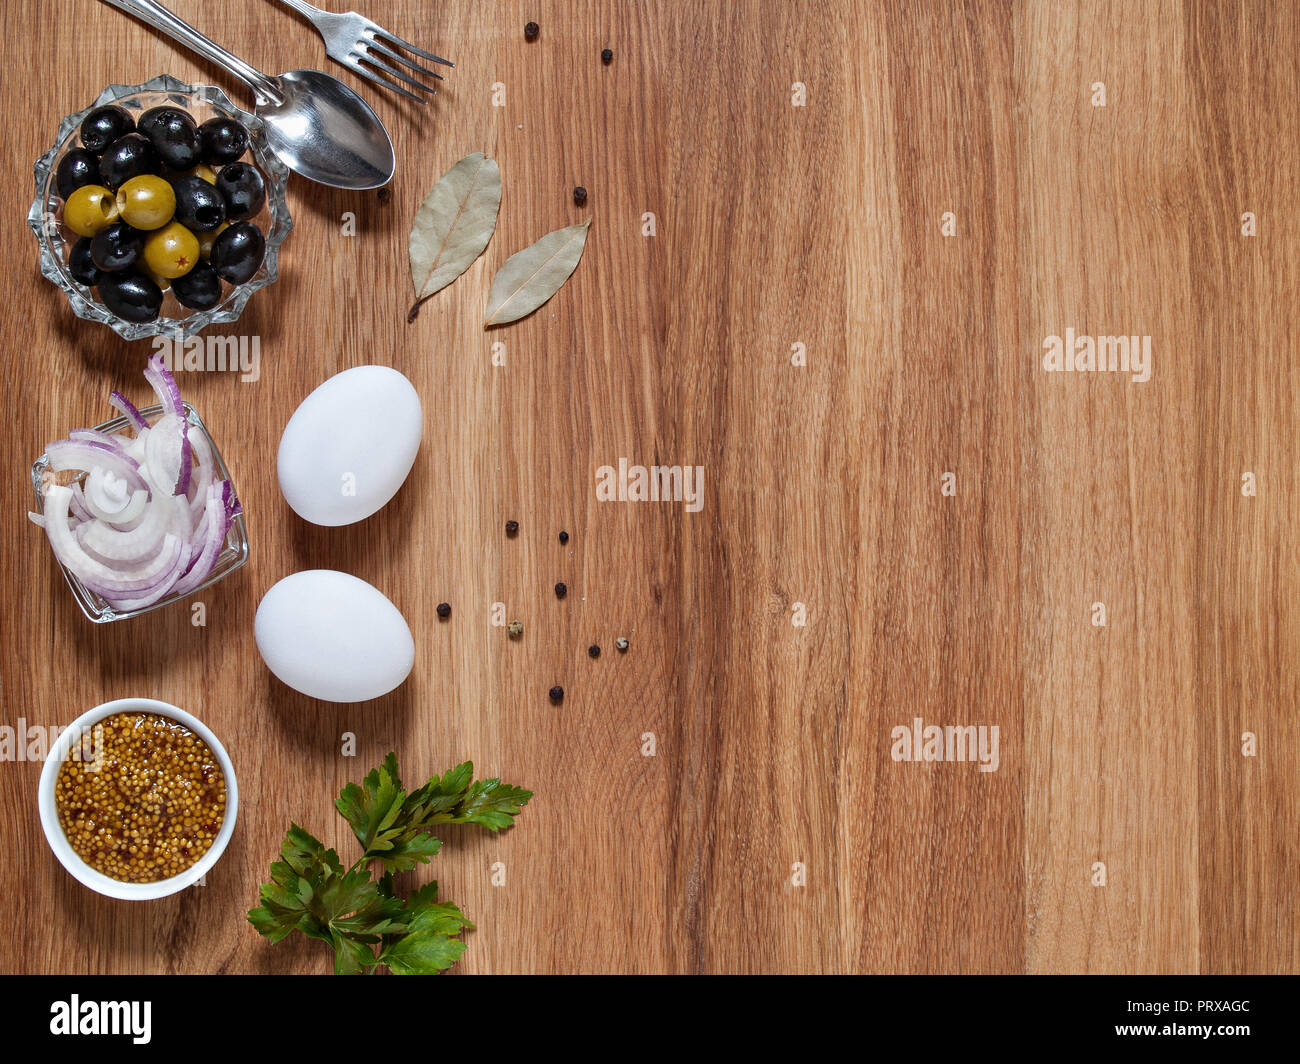 Olives, mustard, chicken eggs, red onion, bay leaf lie on a wooden background horizontally with copy-space - Stock Image